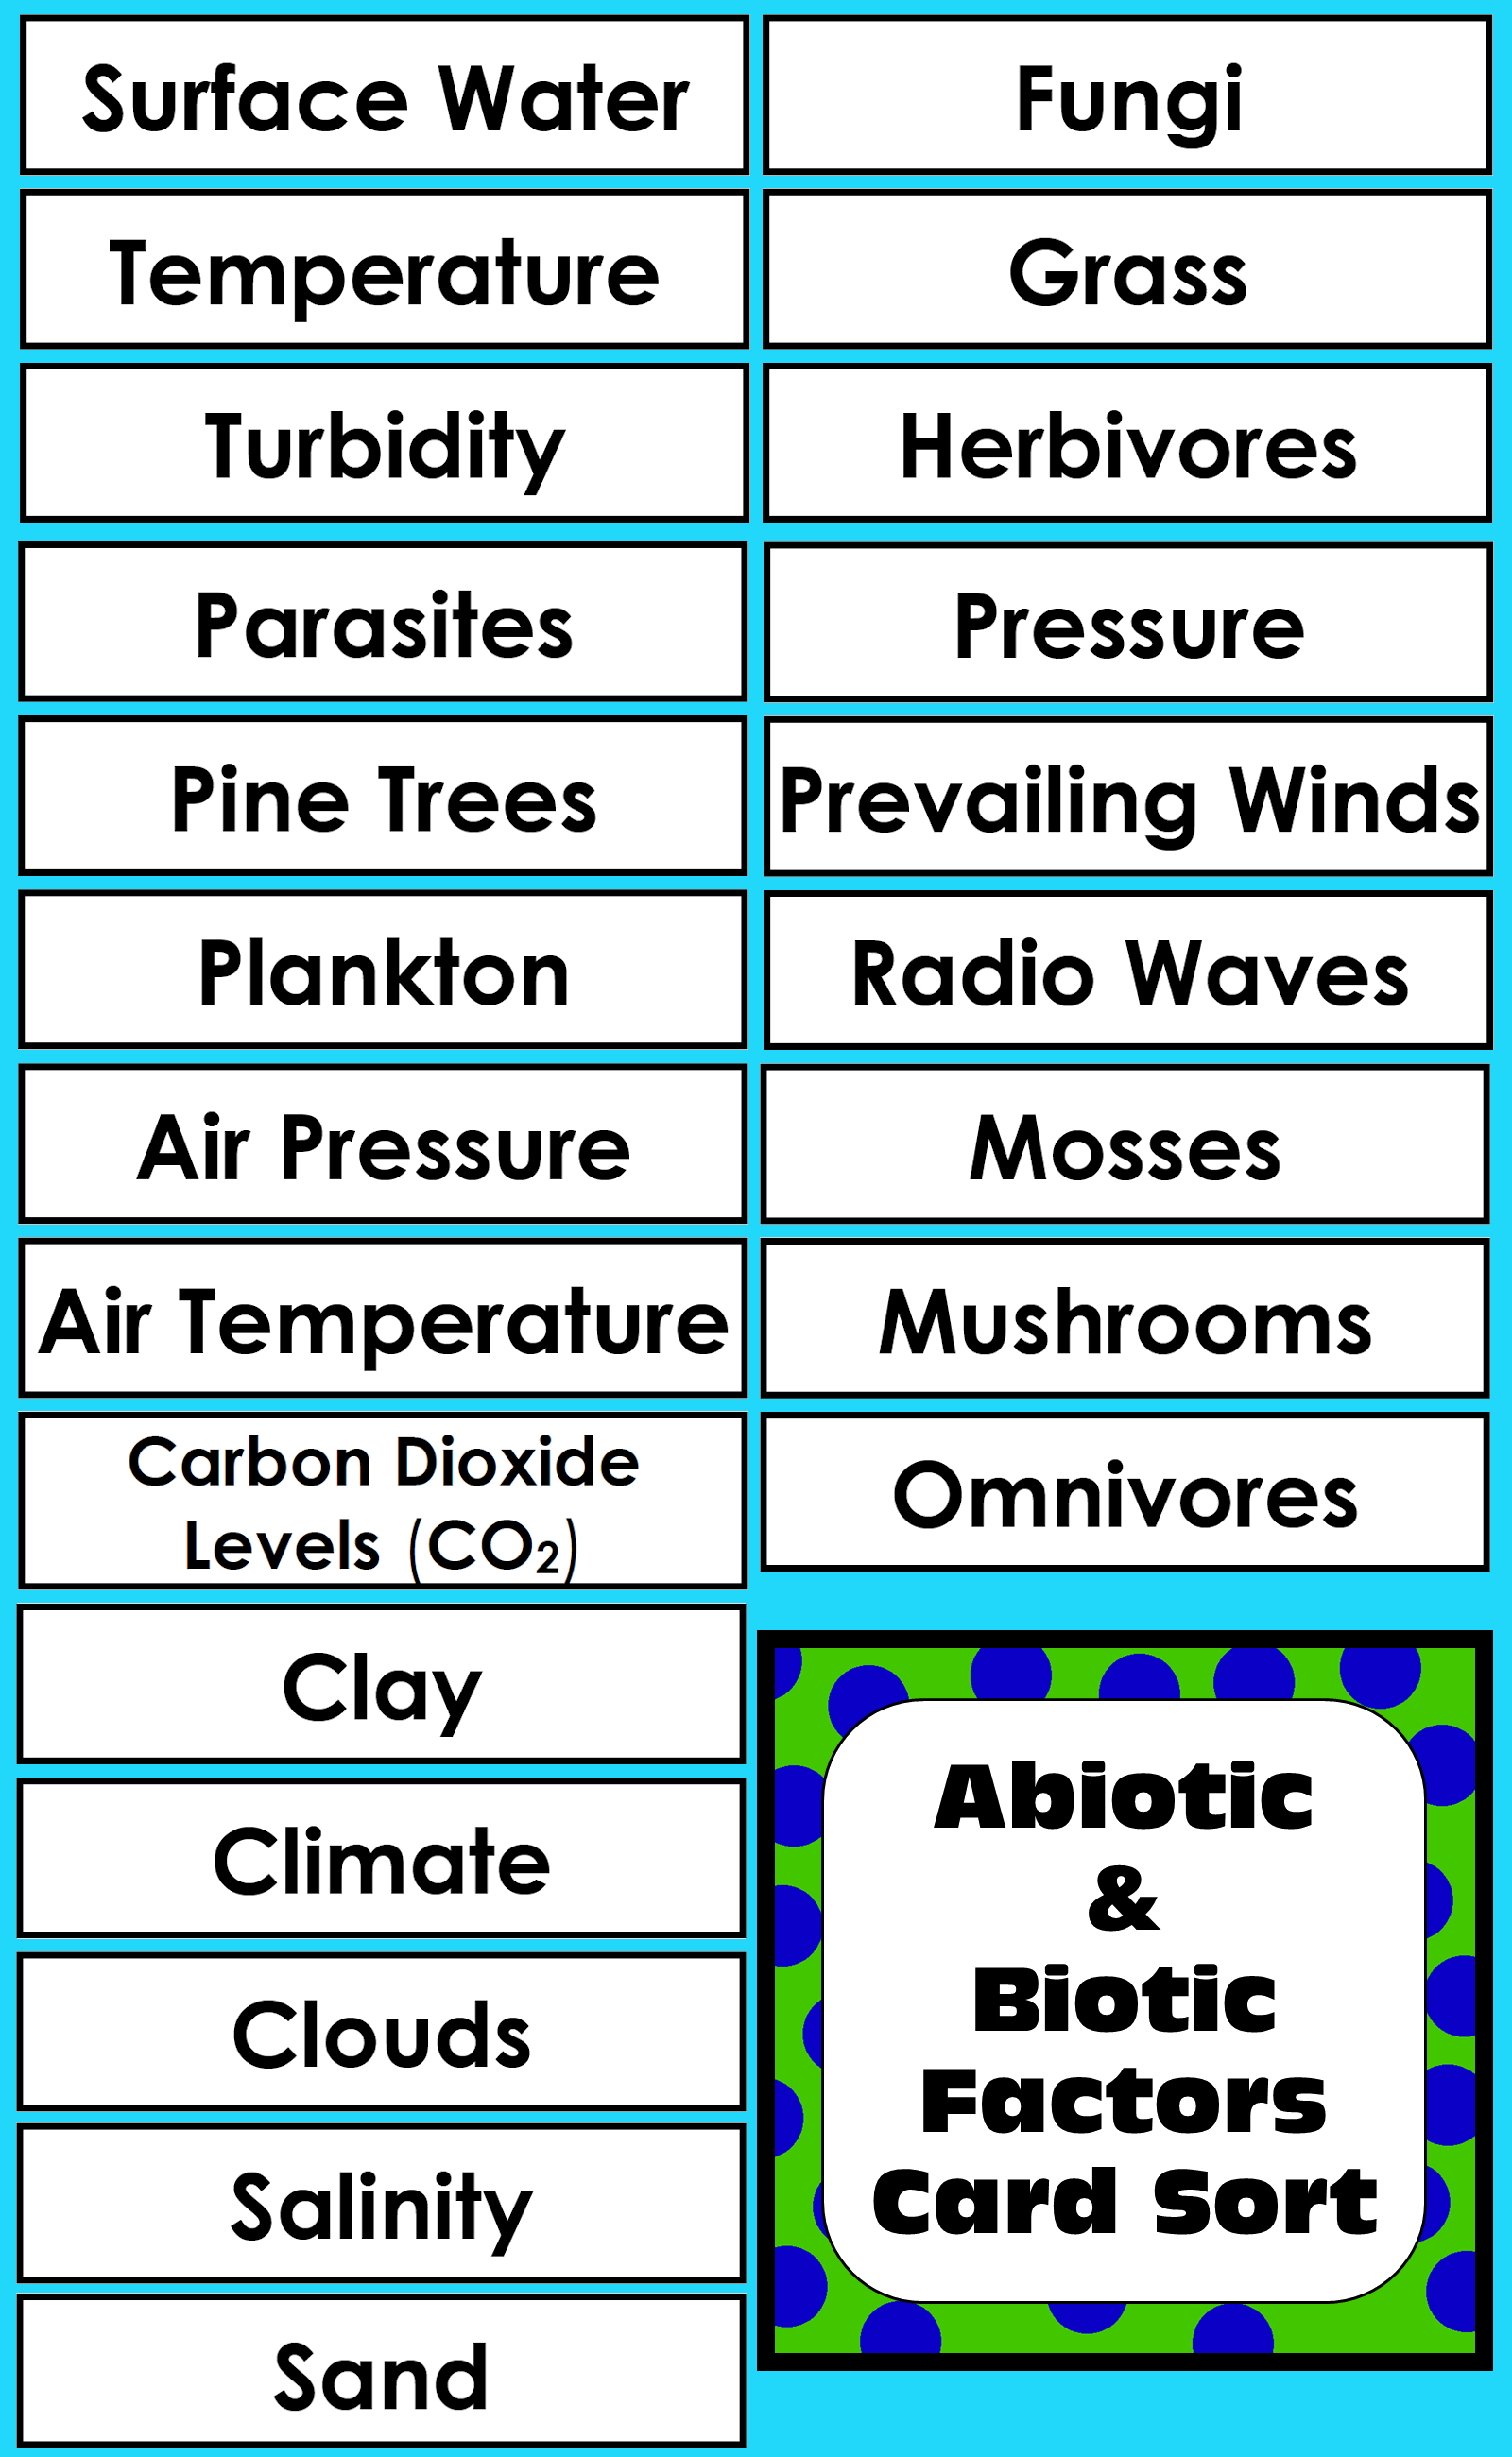 102 Abiotic And Biotic Factors For Students To Sort Great